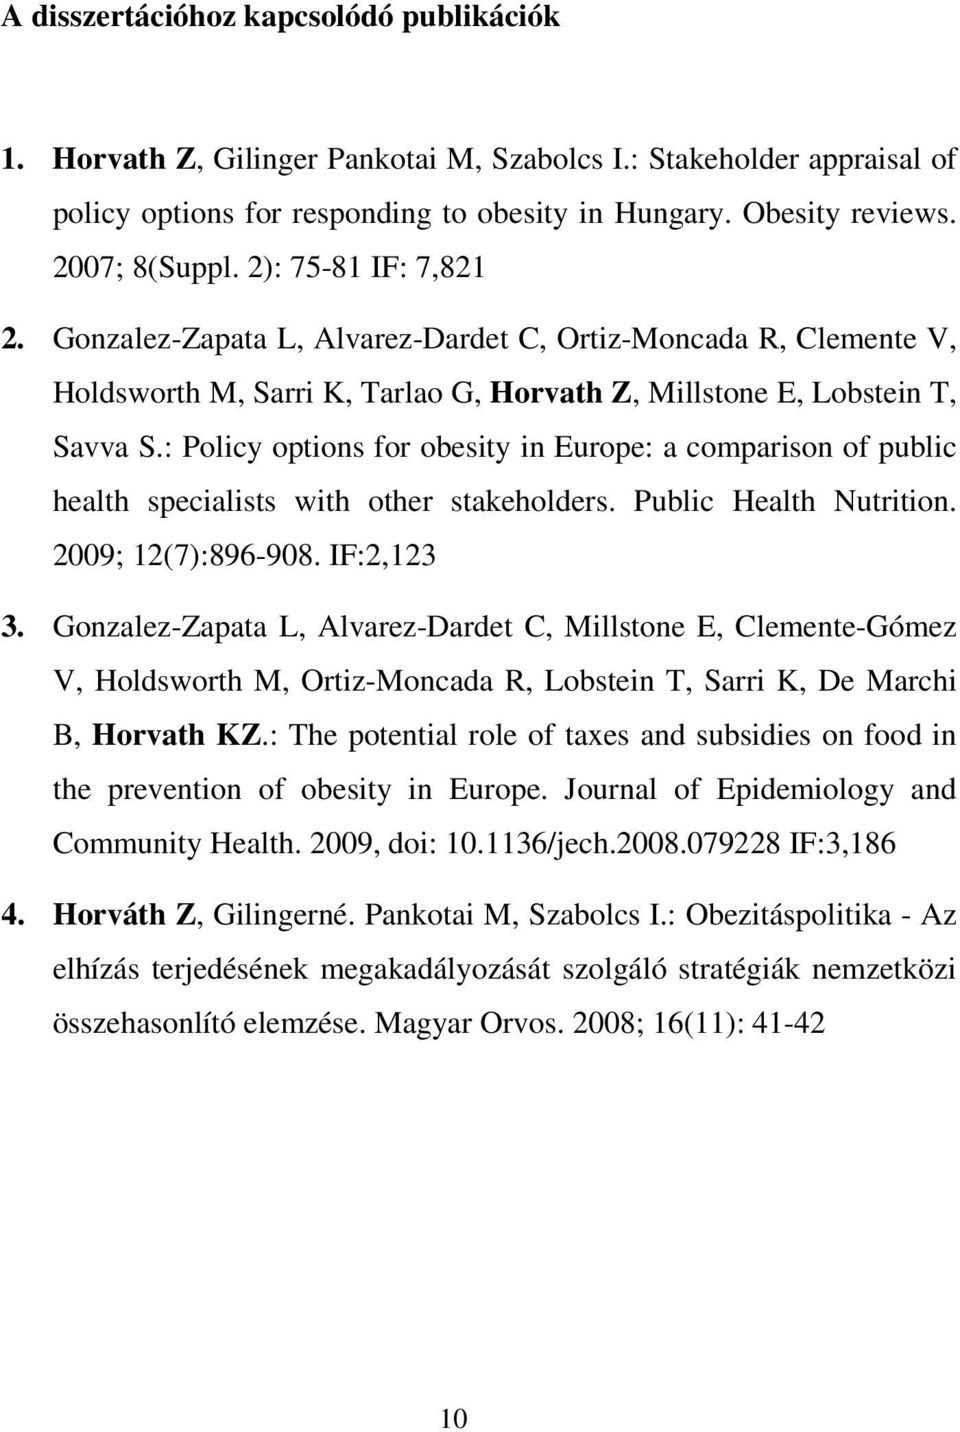 : Policy options for obesity in Europe: a comparison of public health specialists with other stakeholders. Public Health Nutrition. 2009; 12(7):896-908. IF:2,123 3.